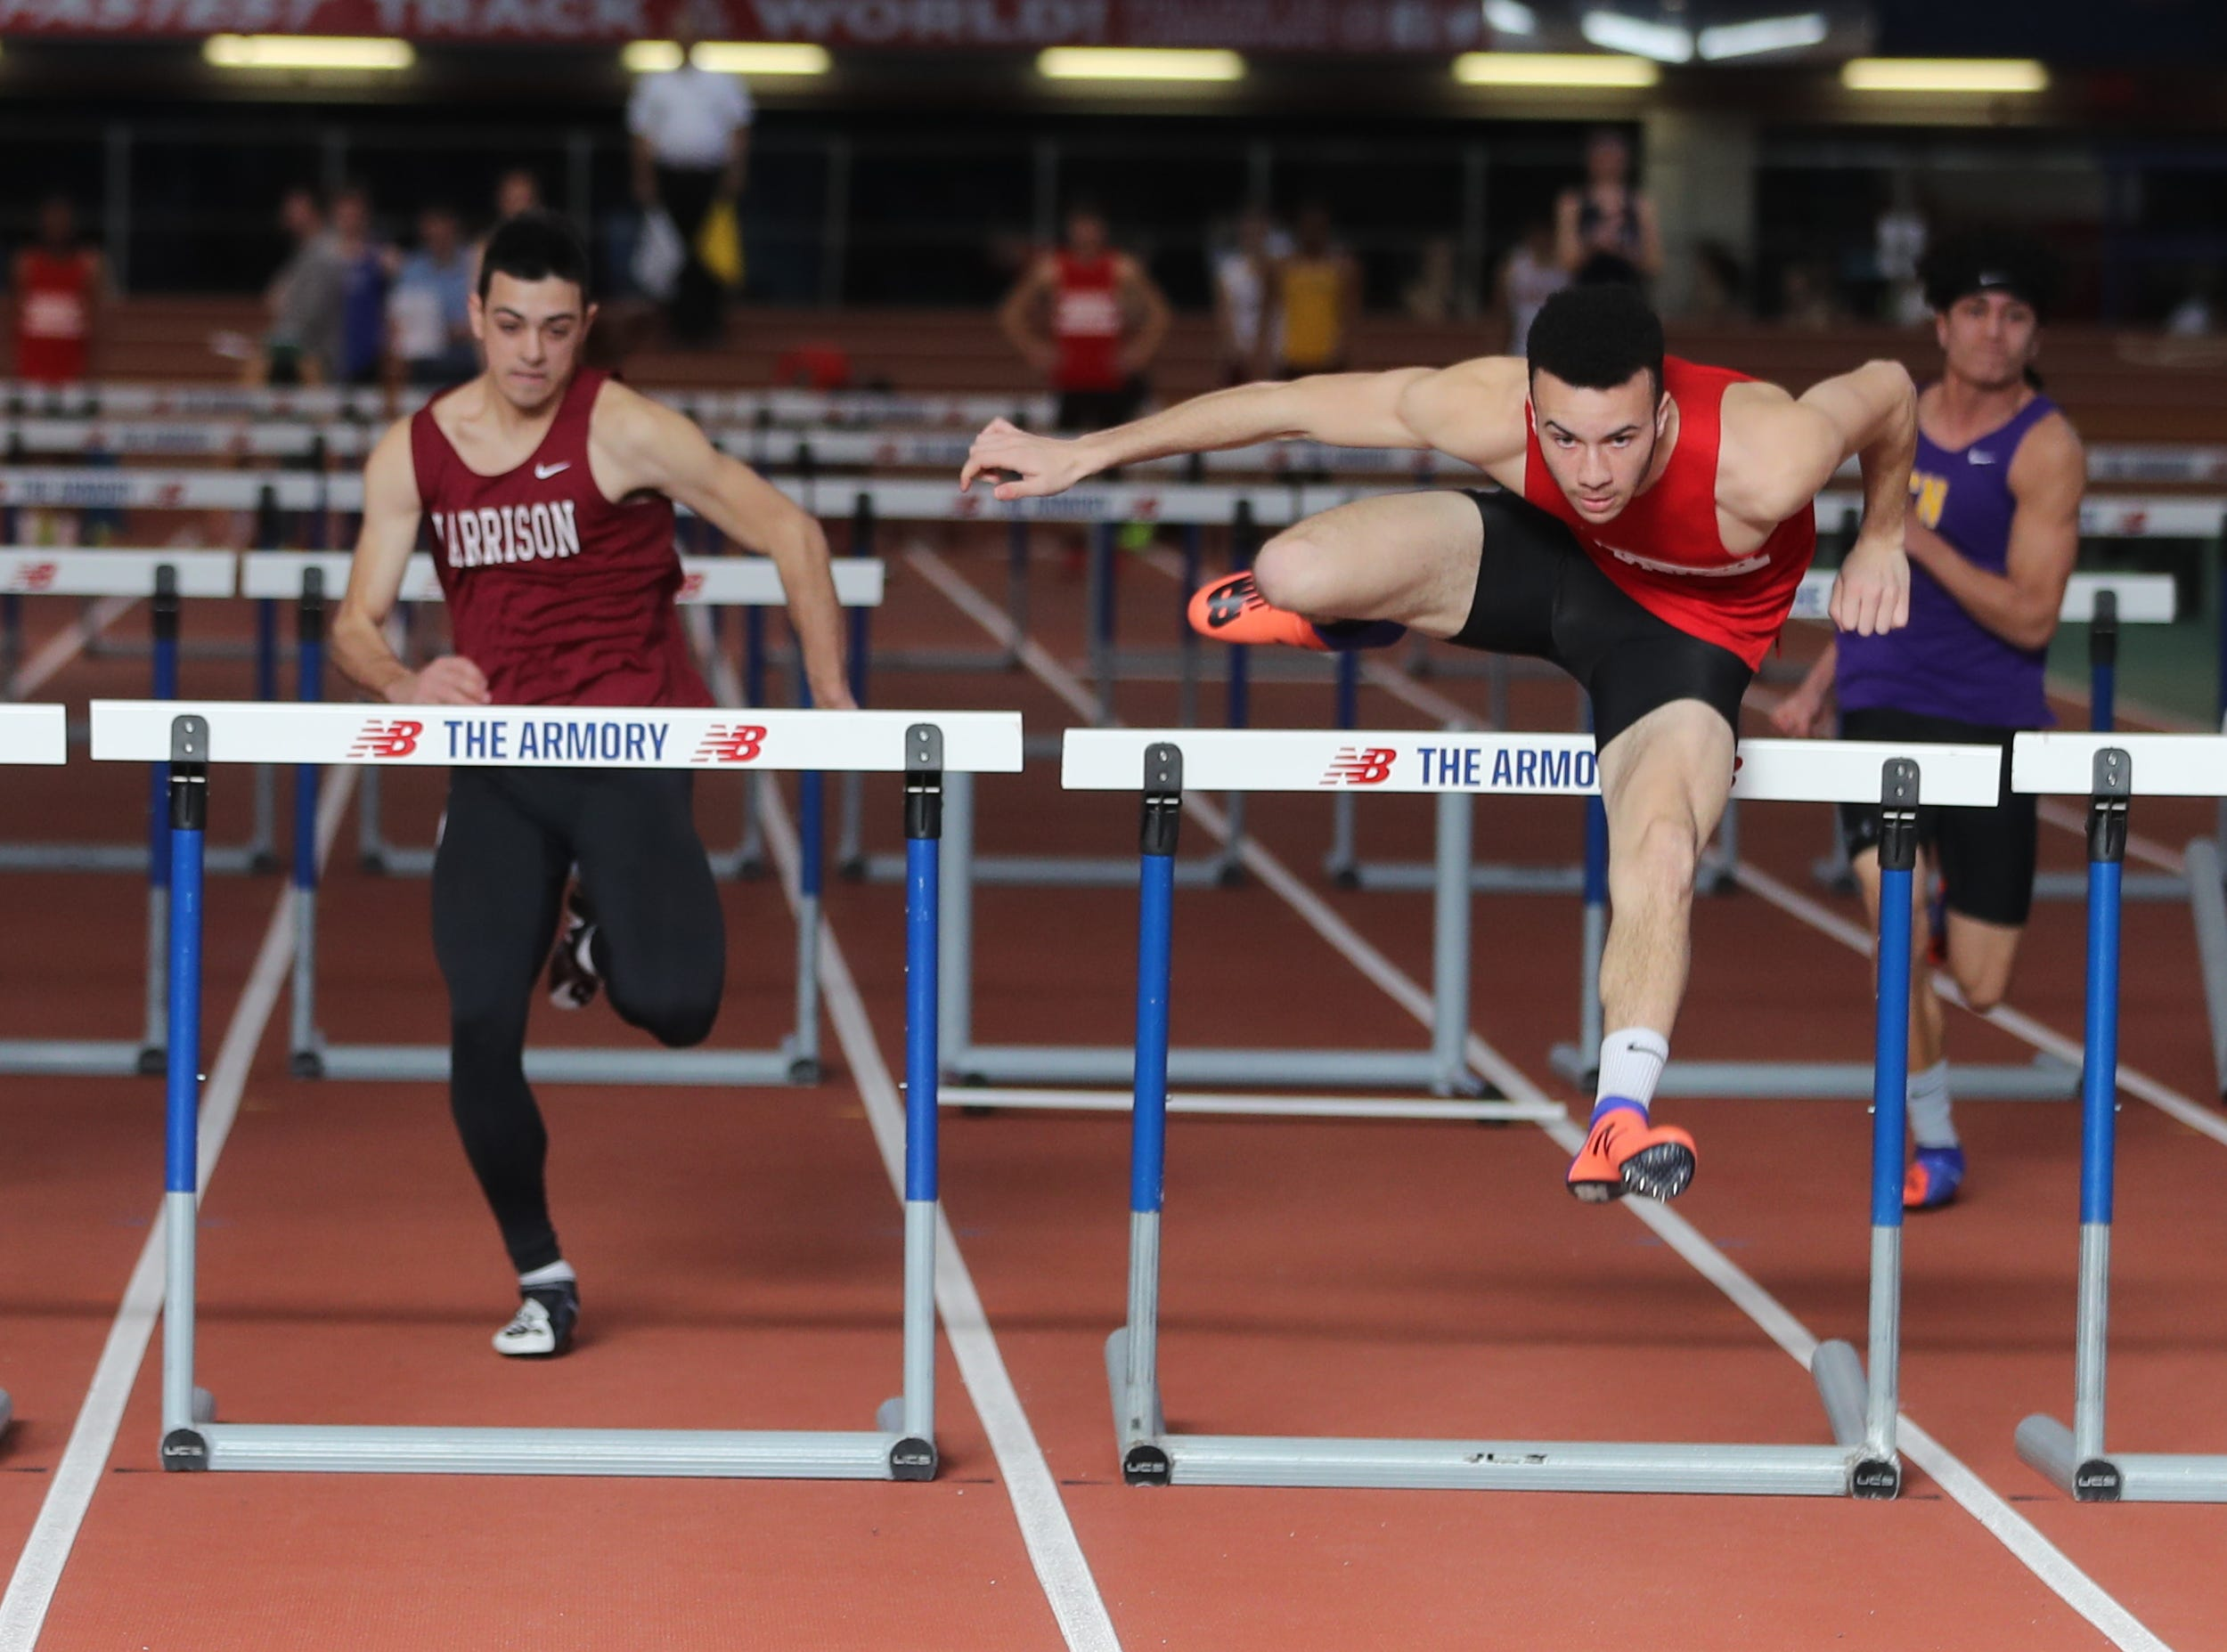 Ryan Curtis of North Rockland won his heat in the 55 meter hurdles during the Section 1 New York State Track and Field State Qualifier at the New Balance Armory in Manhattan Feb. 17, 2019.